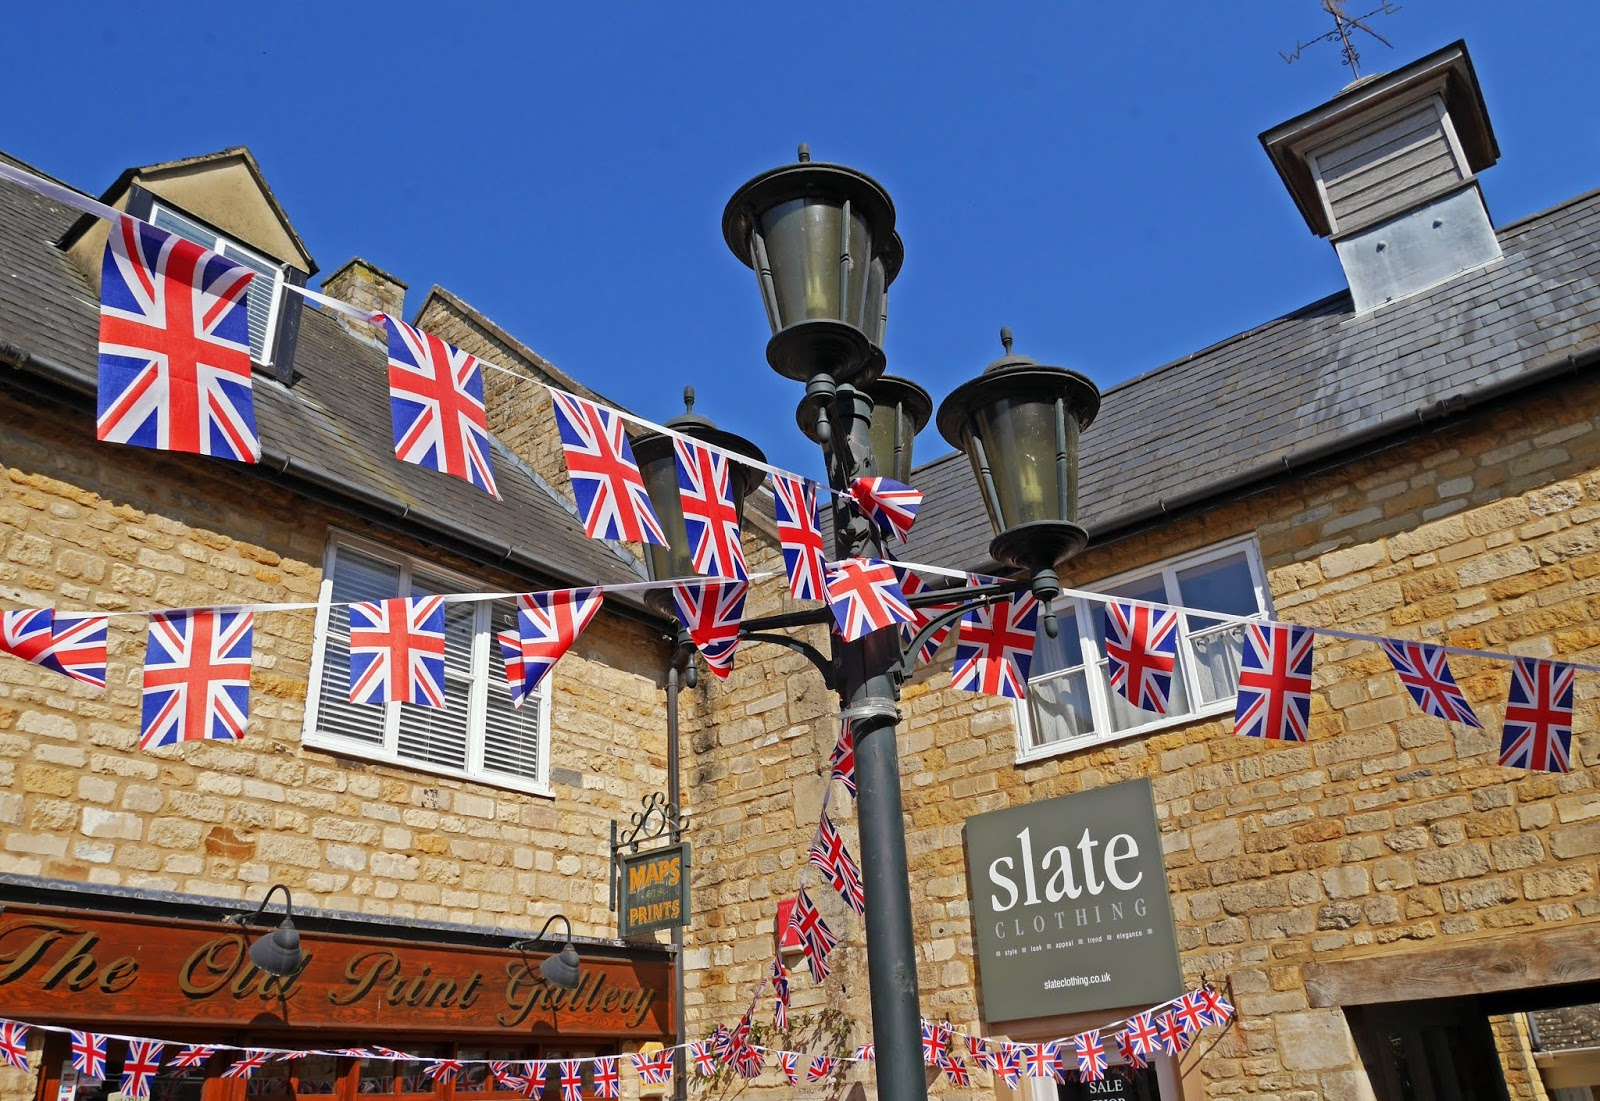 Union Jack bunting in The Cotswolds